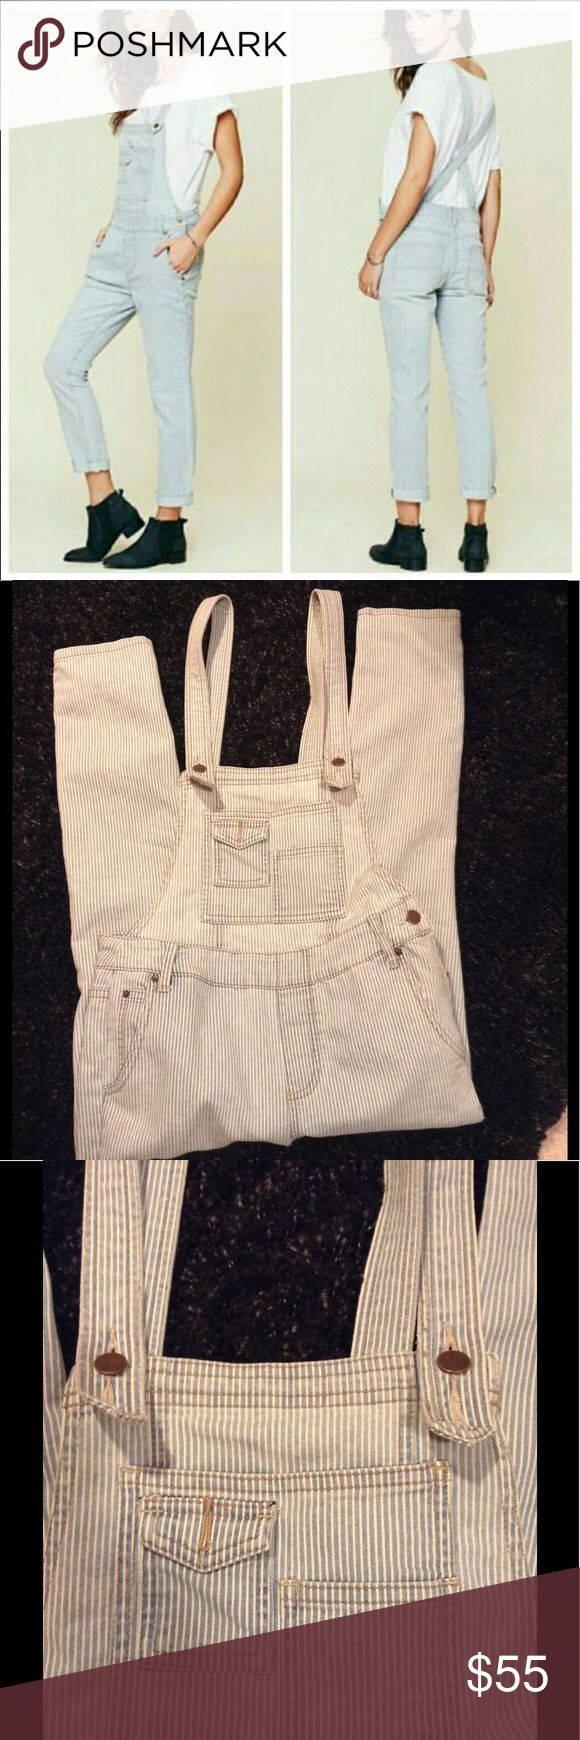 Free People Railroad Stripe Bibs Light blue and white stripe- railroad look denim. 25 waist, 27 inseam. Free People Jeans Overalls